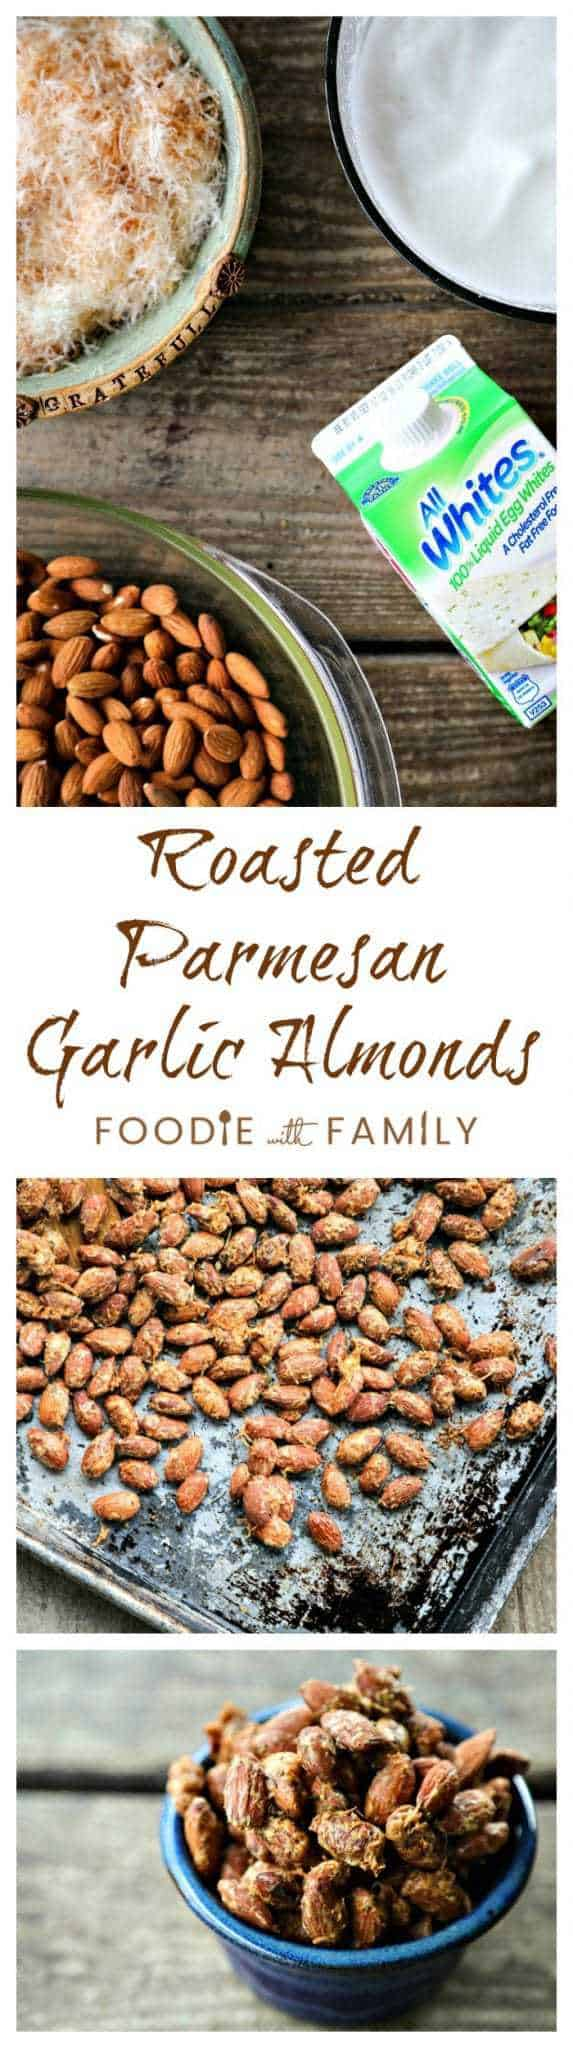 Roasted Parmesan Garlic Almonds: Super savoury, crunchy, crave-worthy, and nutritious to boot. That sounds like the perfect snack food to me!